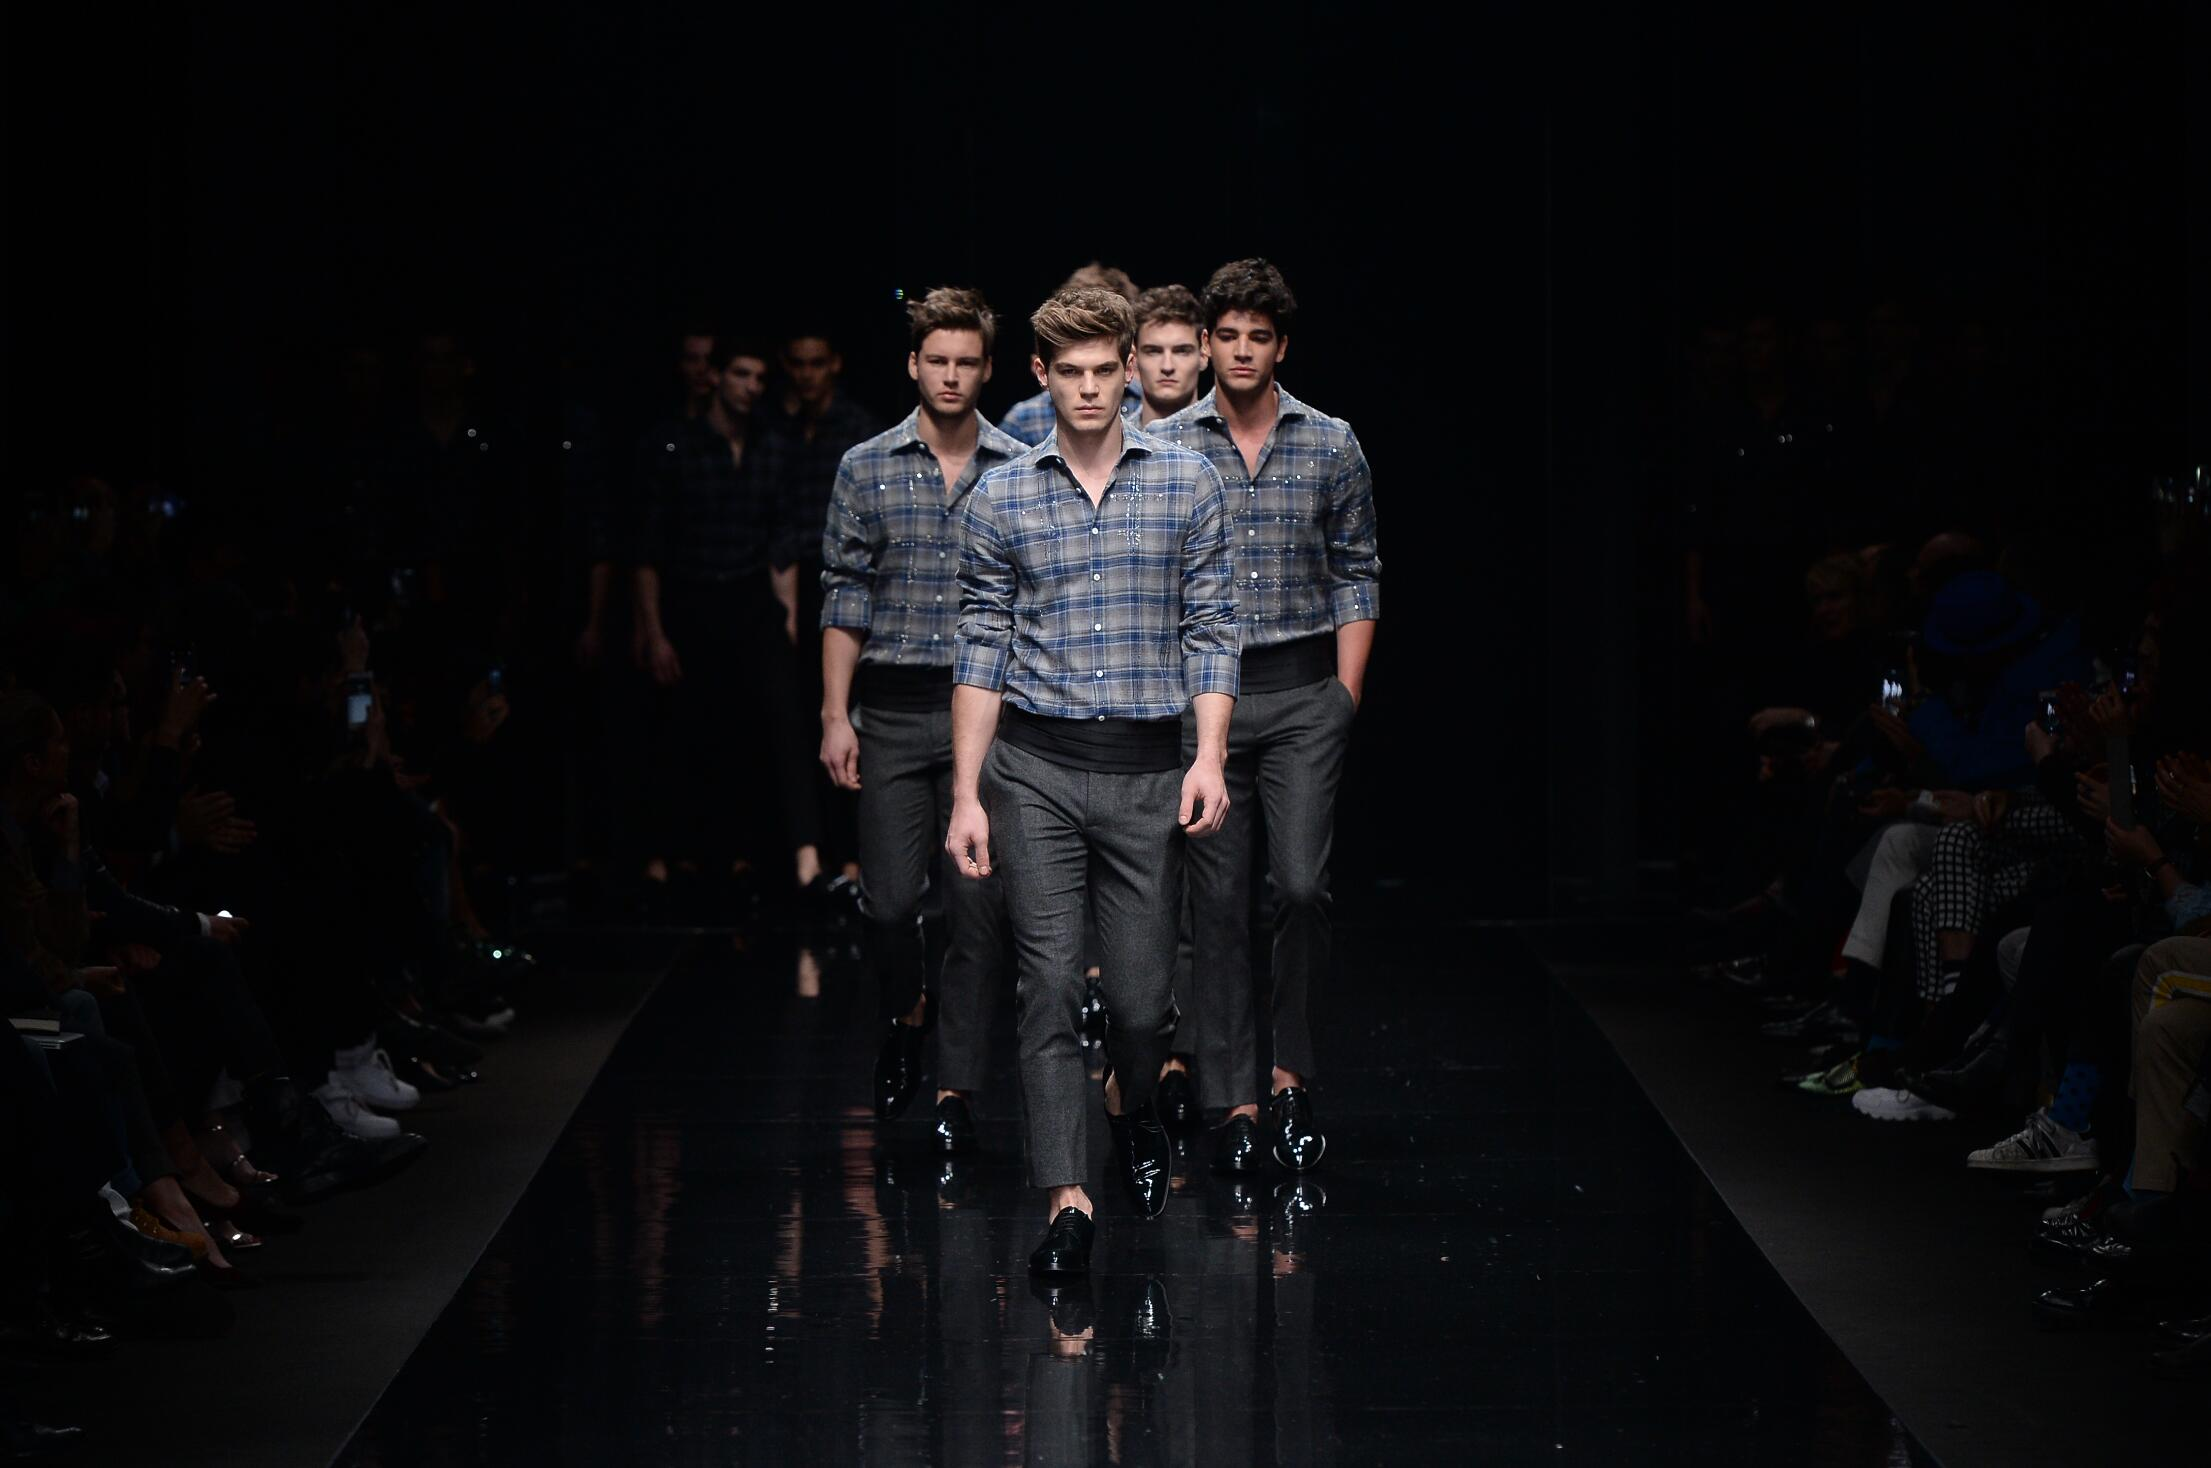 Ermanno Scervino Fashion Show Finale